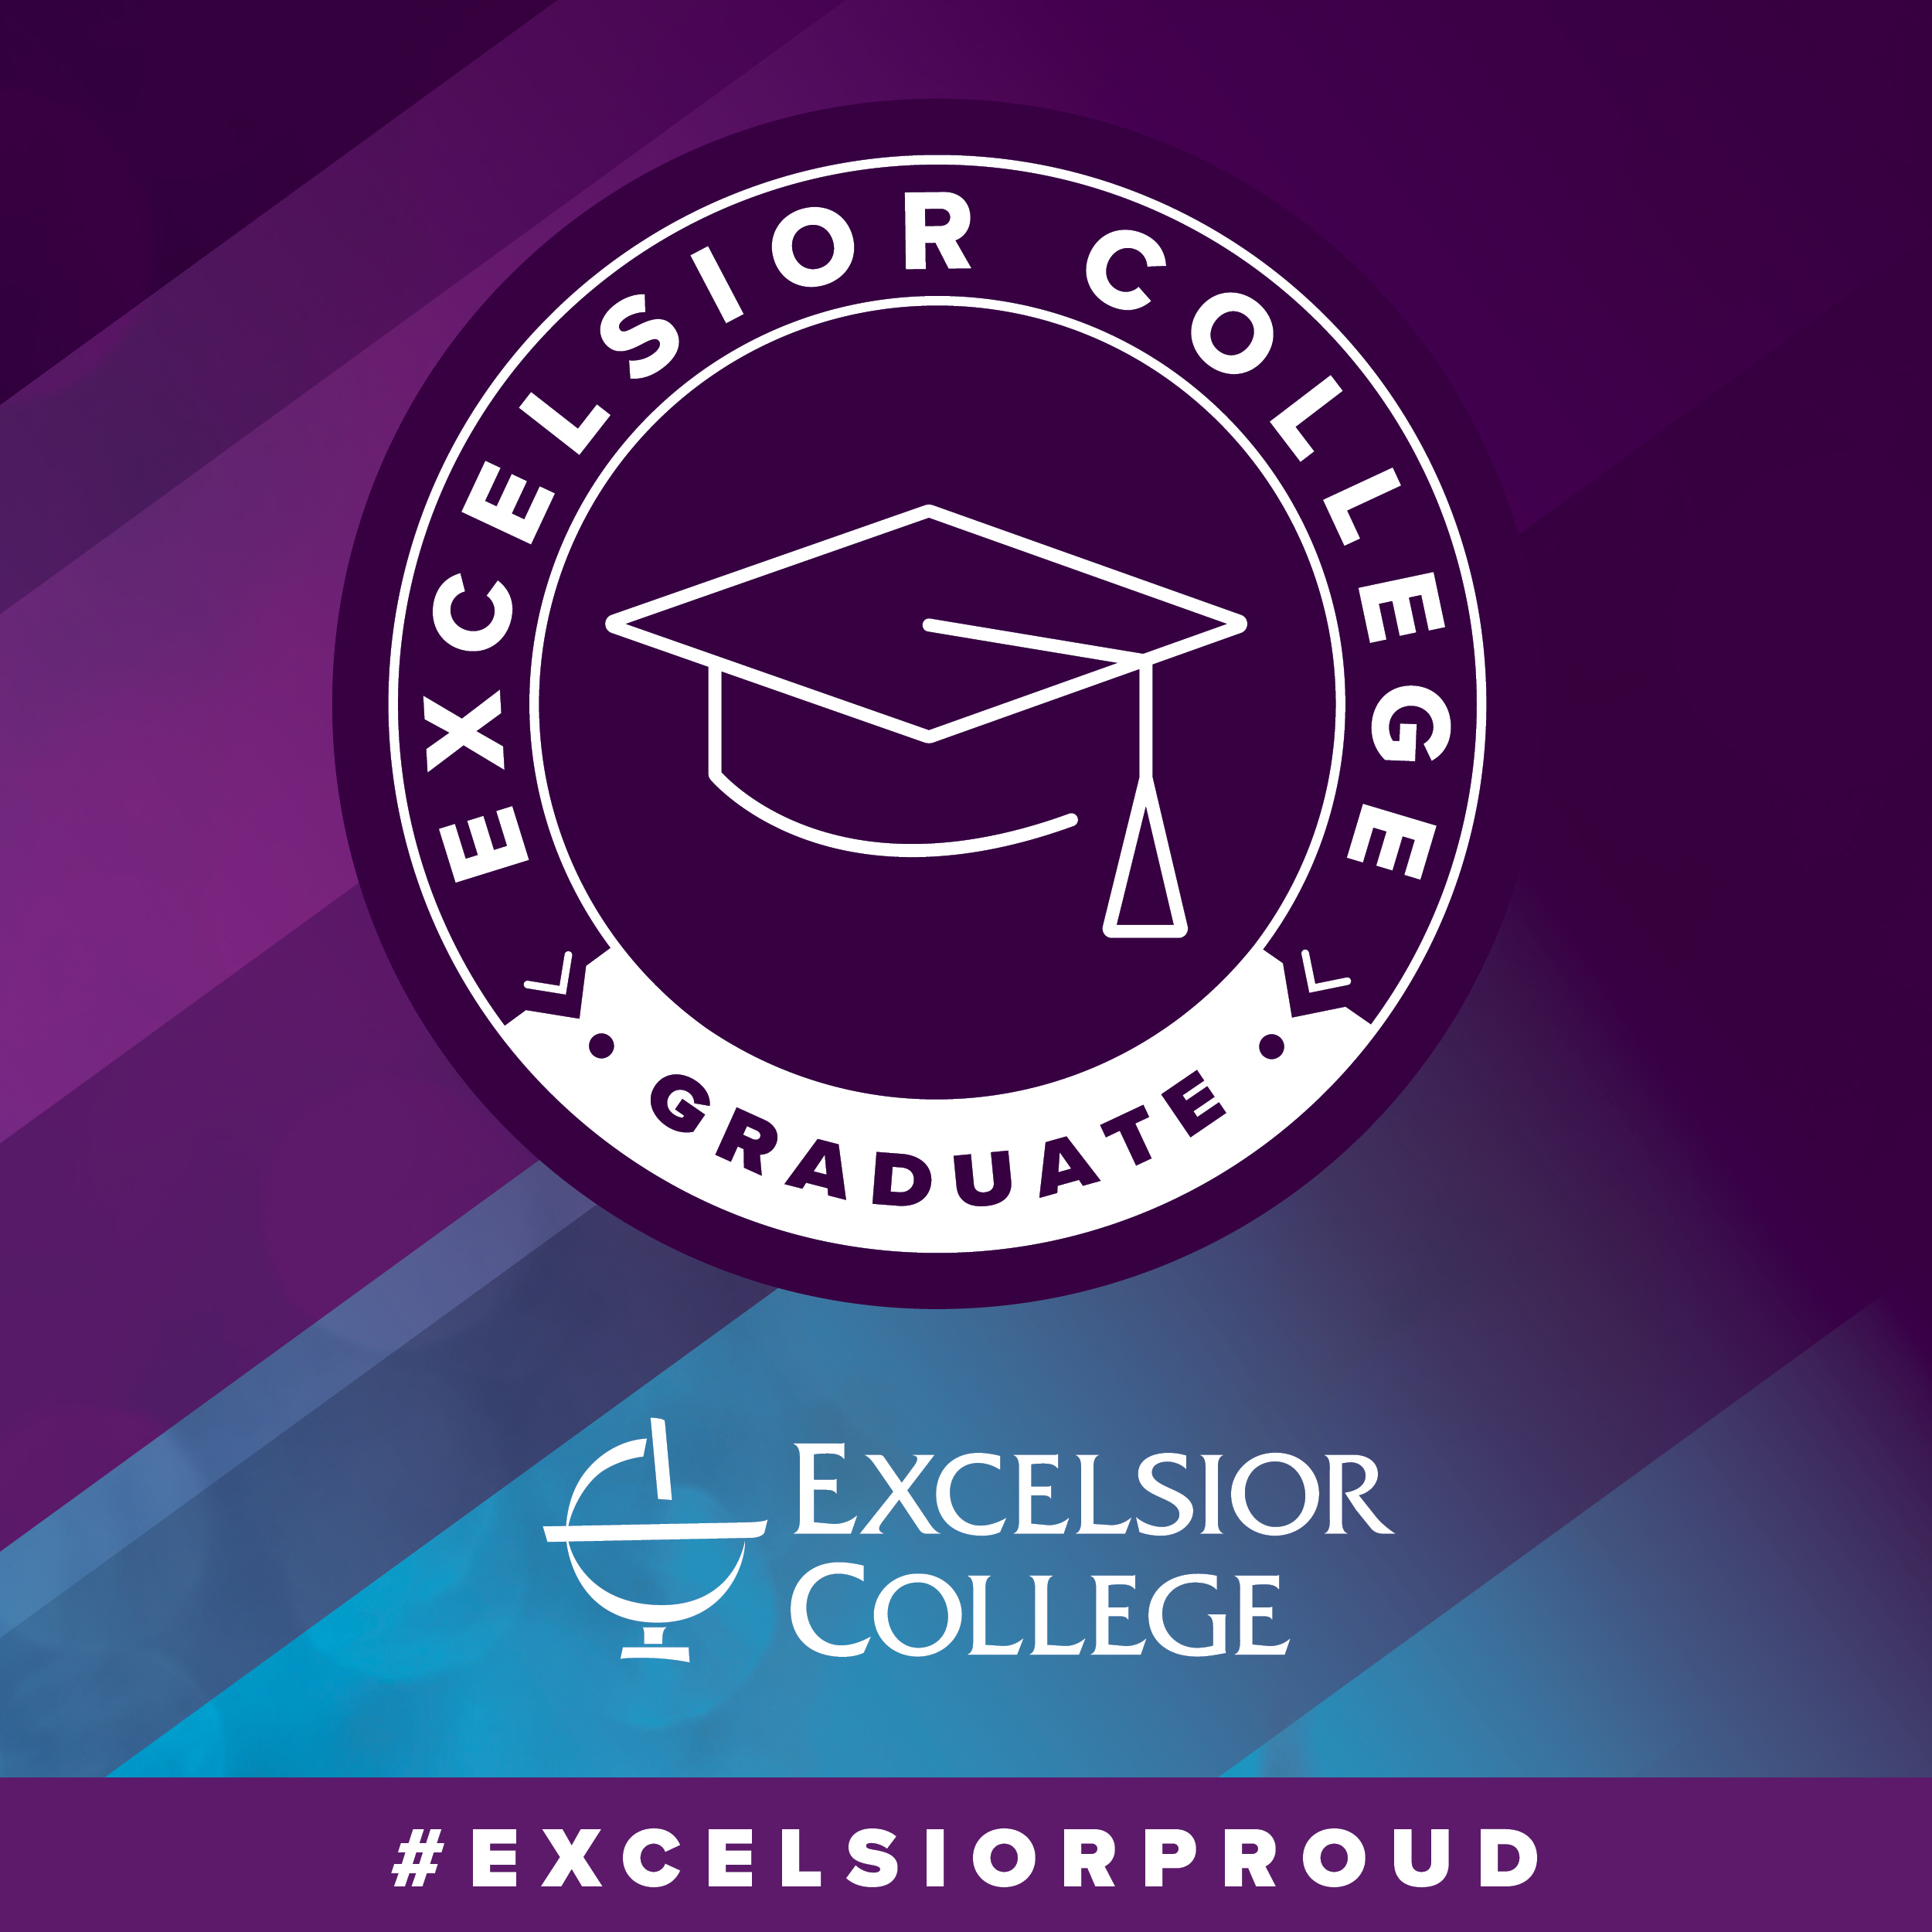 Excelsior College Class of 2021 #Excelsior Proud